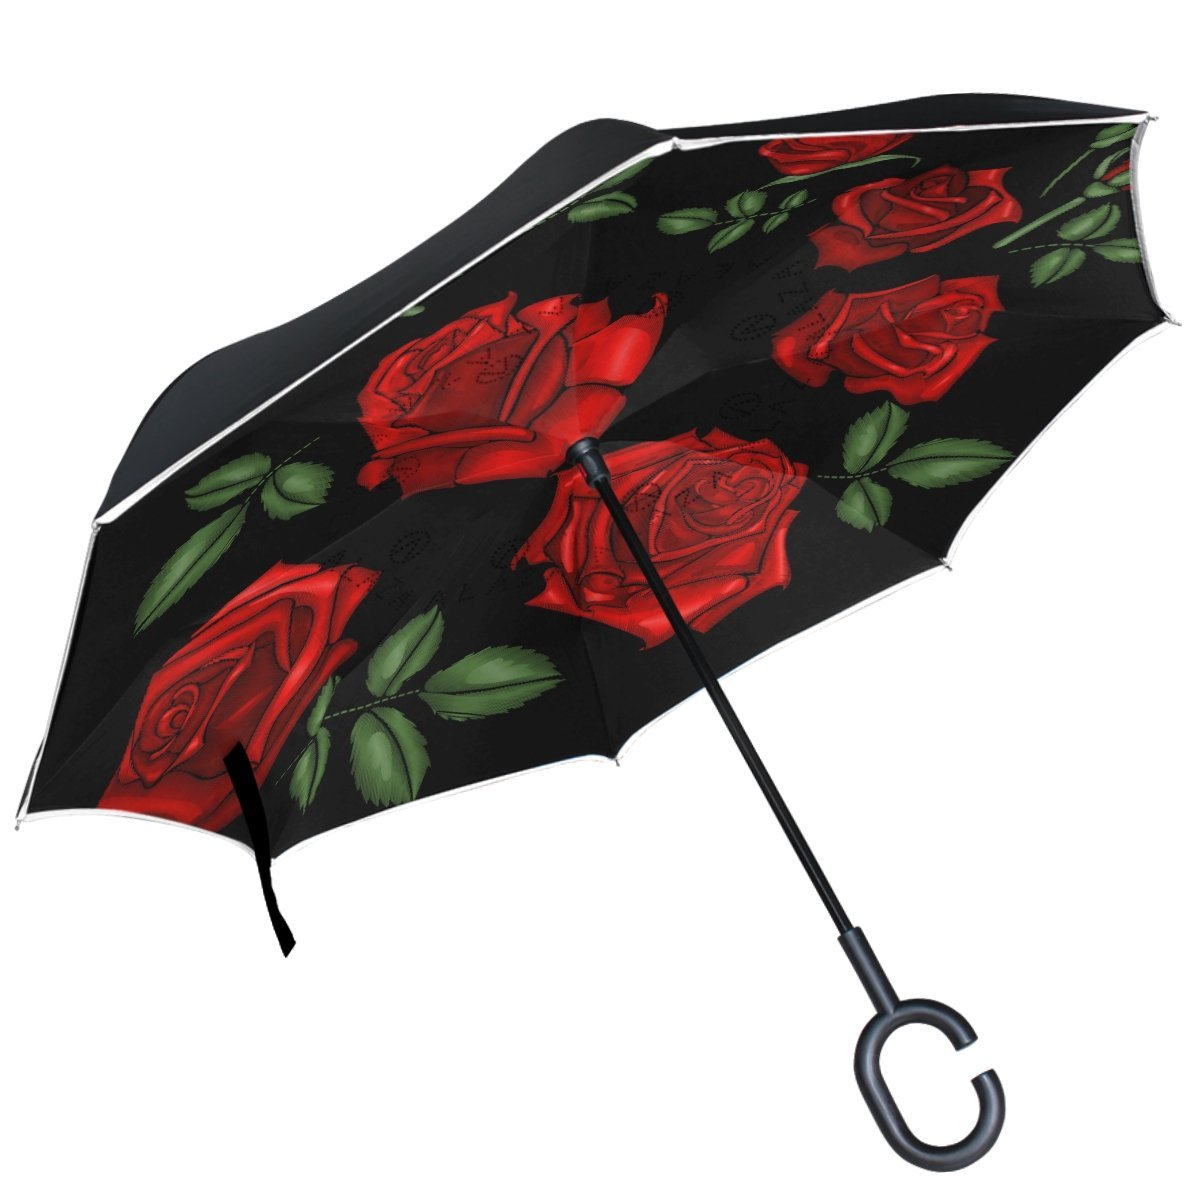 ALAZA Red Roses Embroidery Valentine Love Inverted Umbrella Double Layer Windproof Reverse Folding Umbrella for Car With C-Shape Handle